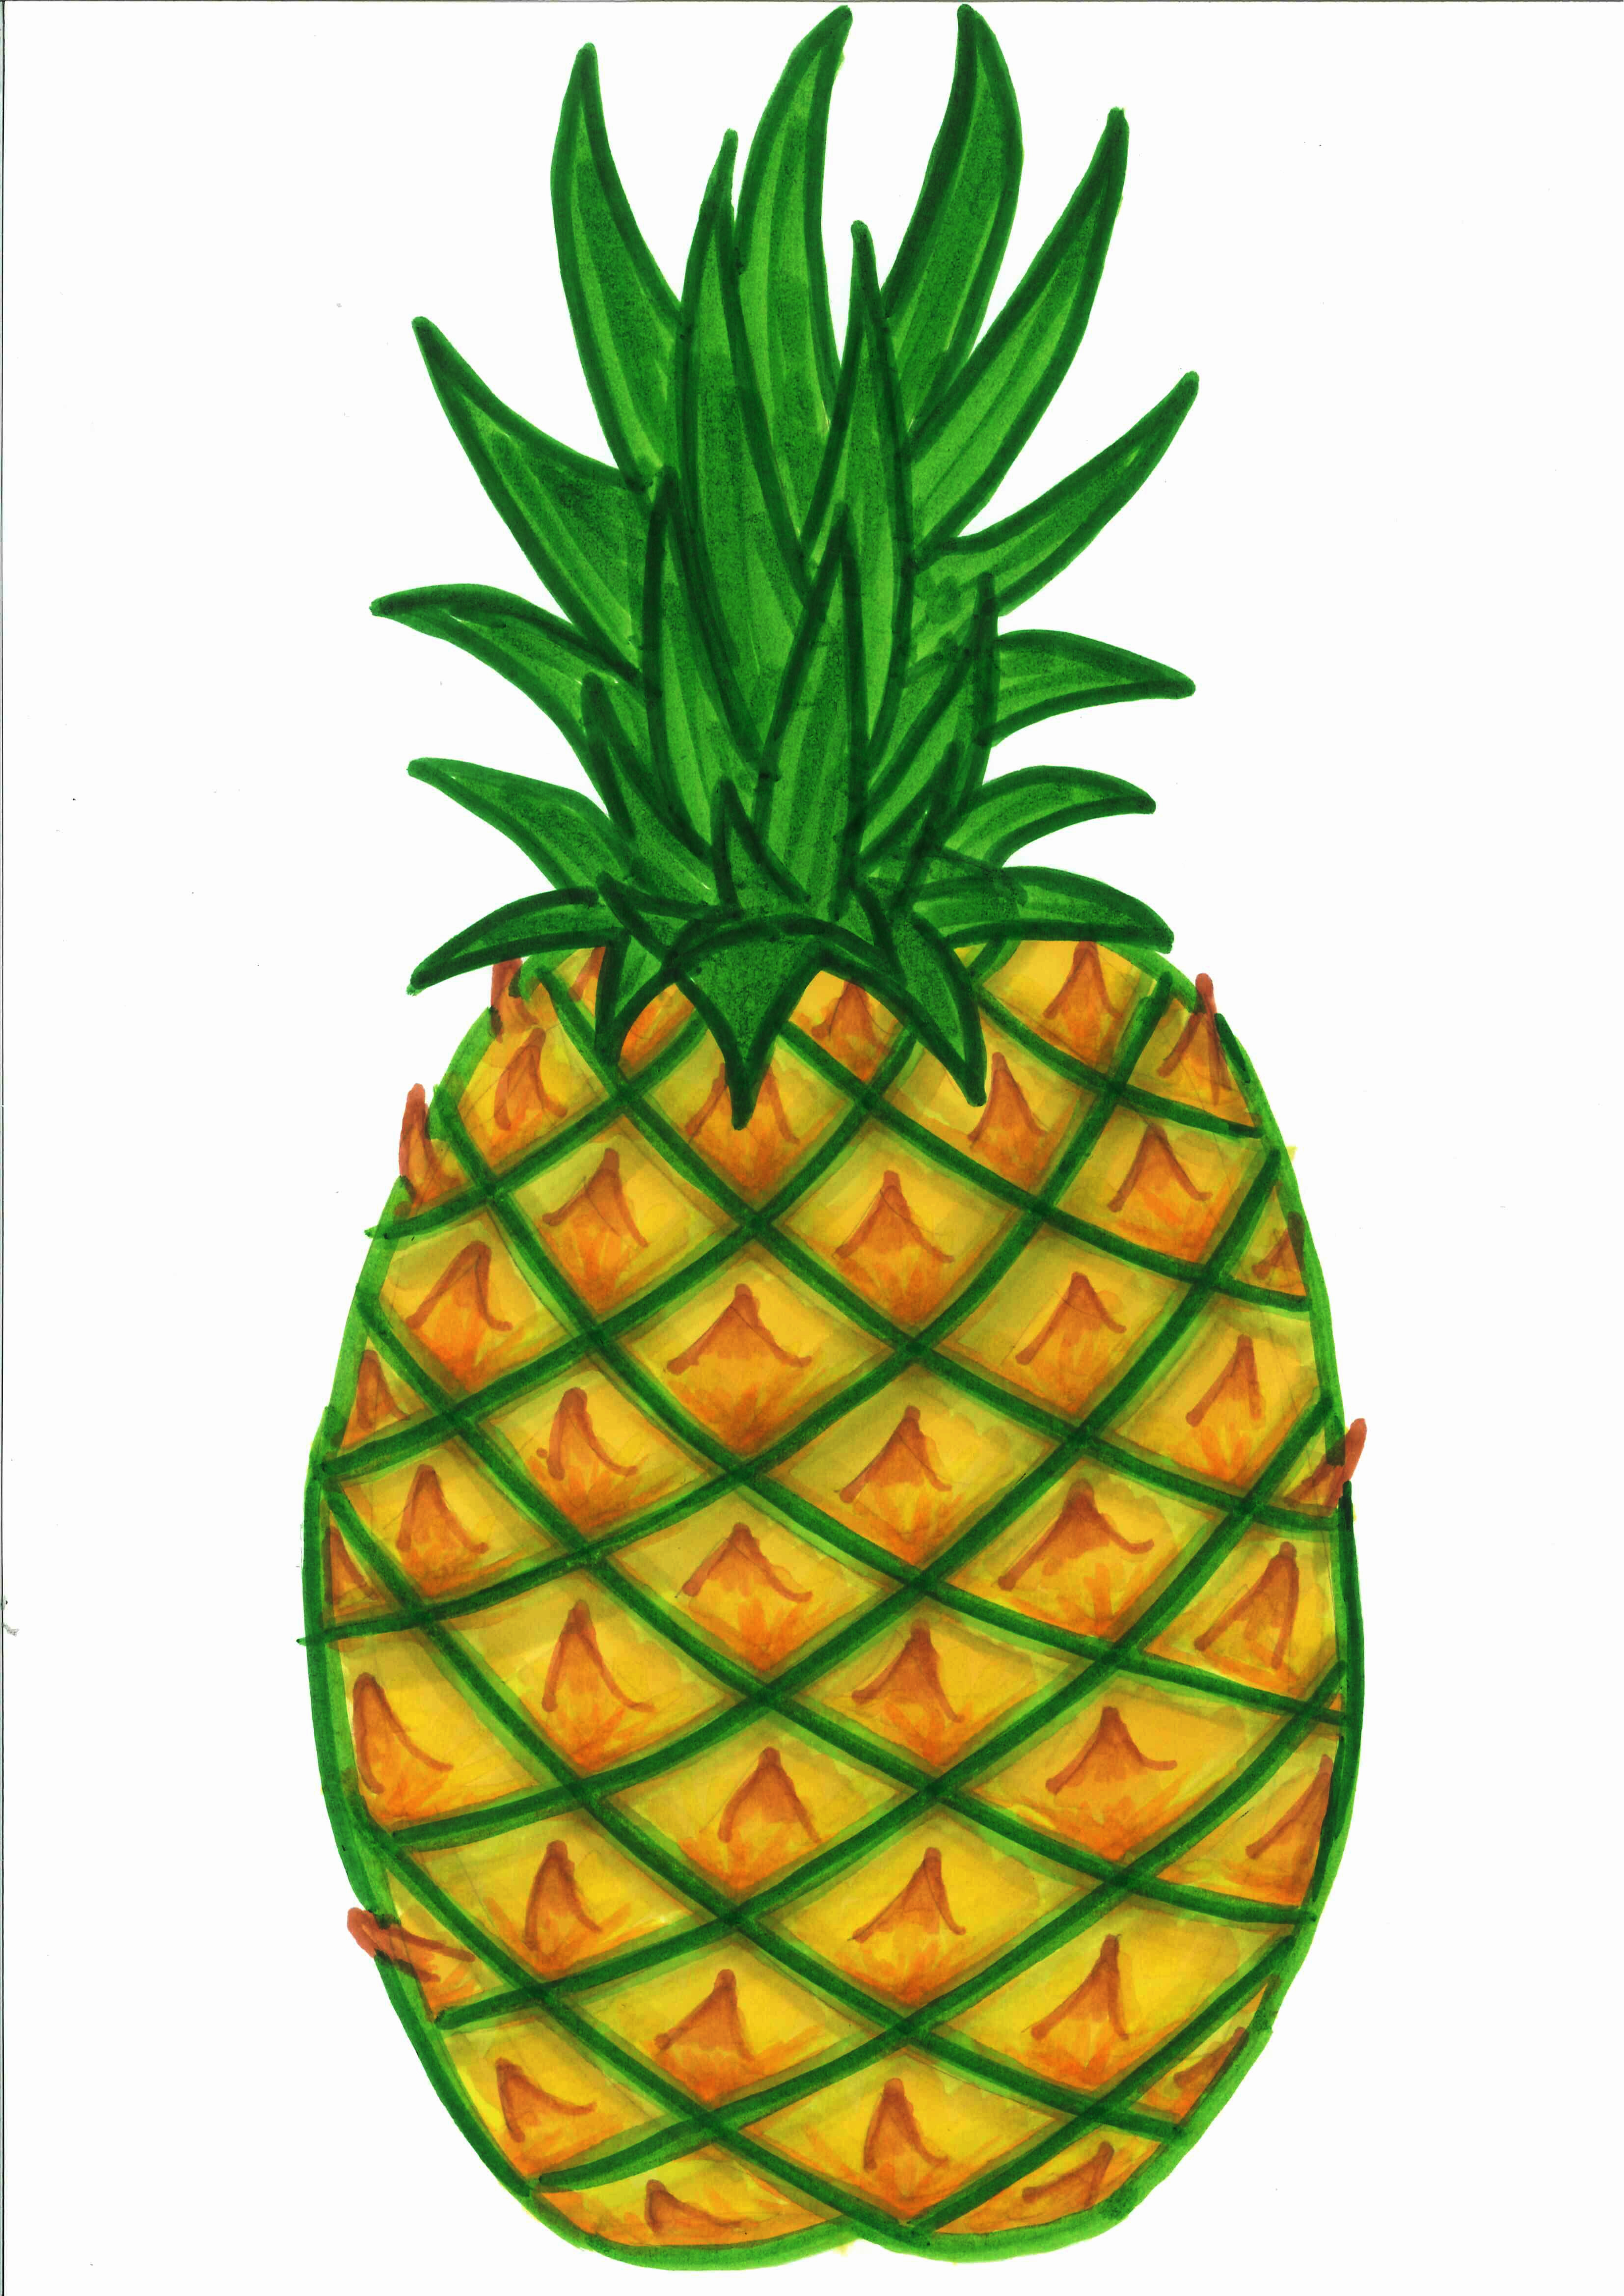 pineapple clipart black and white